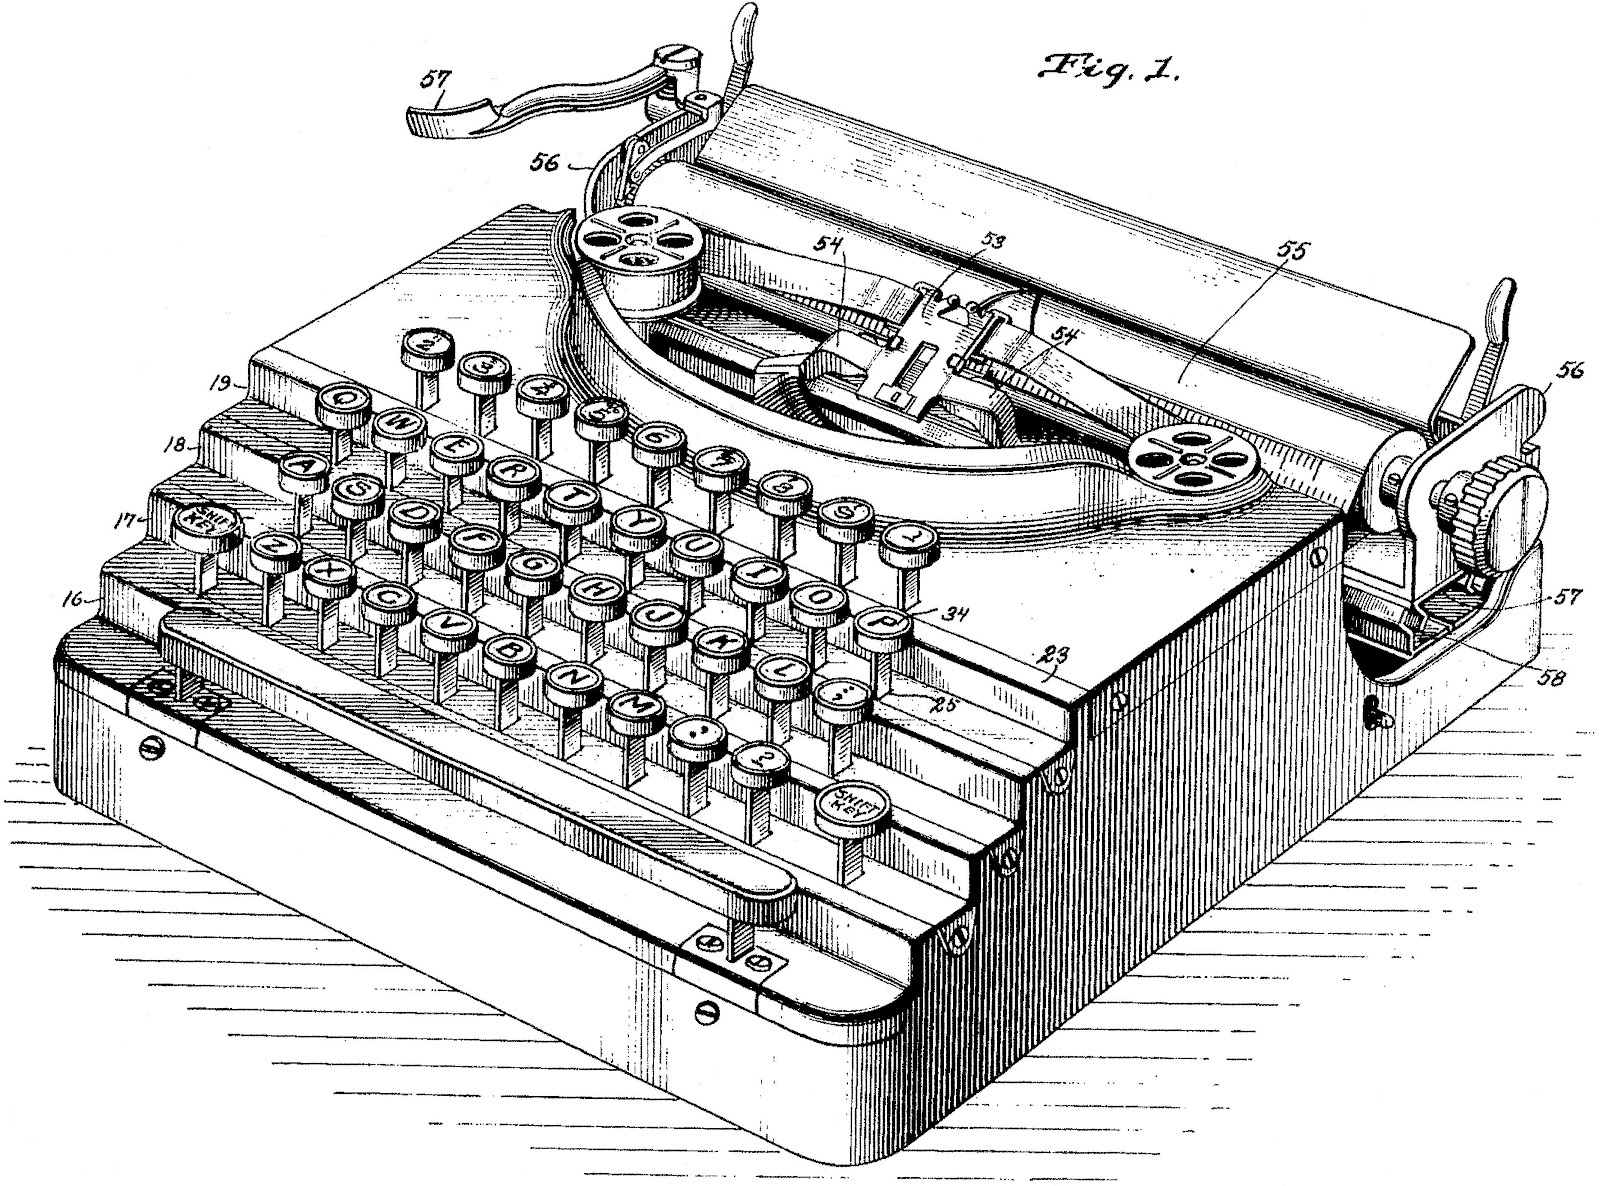 oz.Typewriter: On This Day in Typewriter History: V for